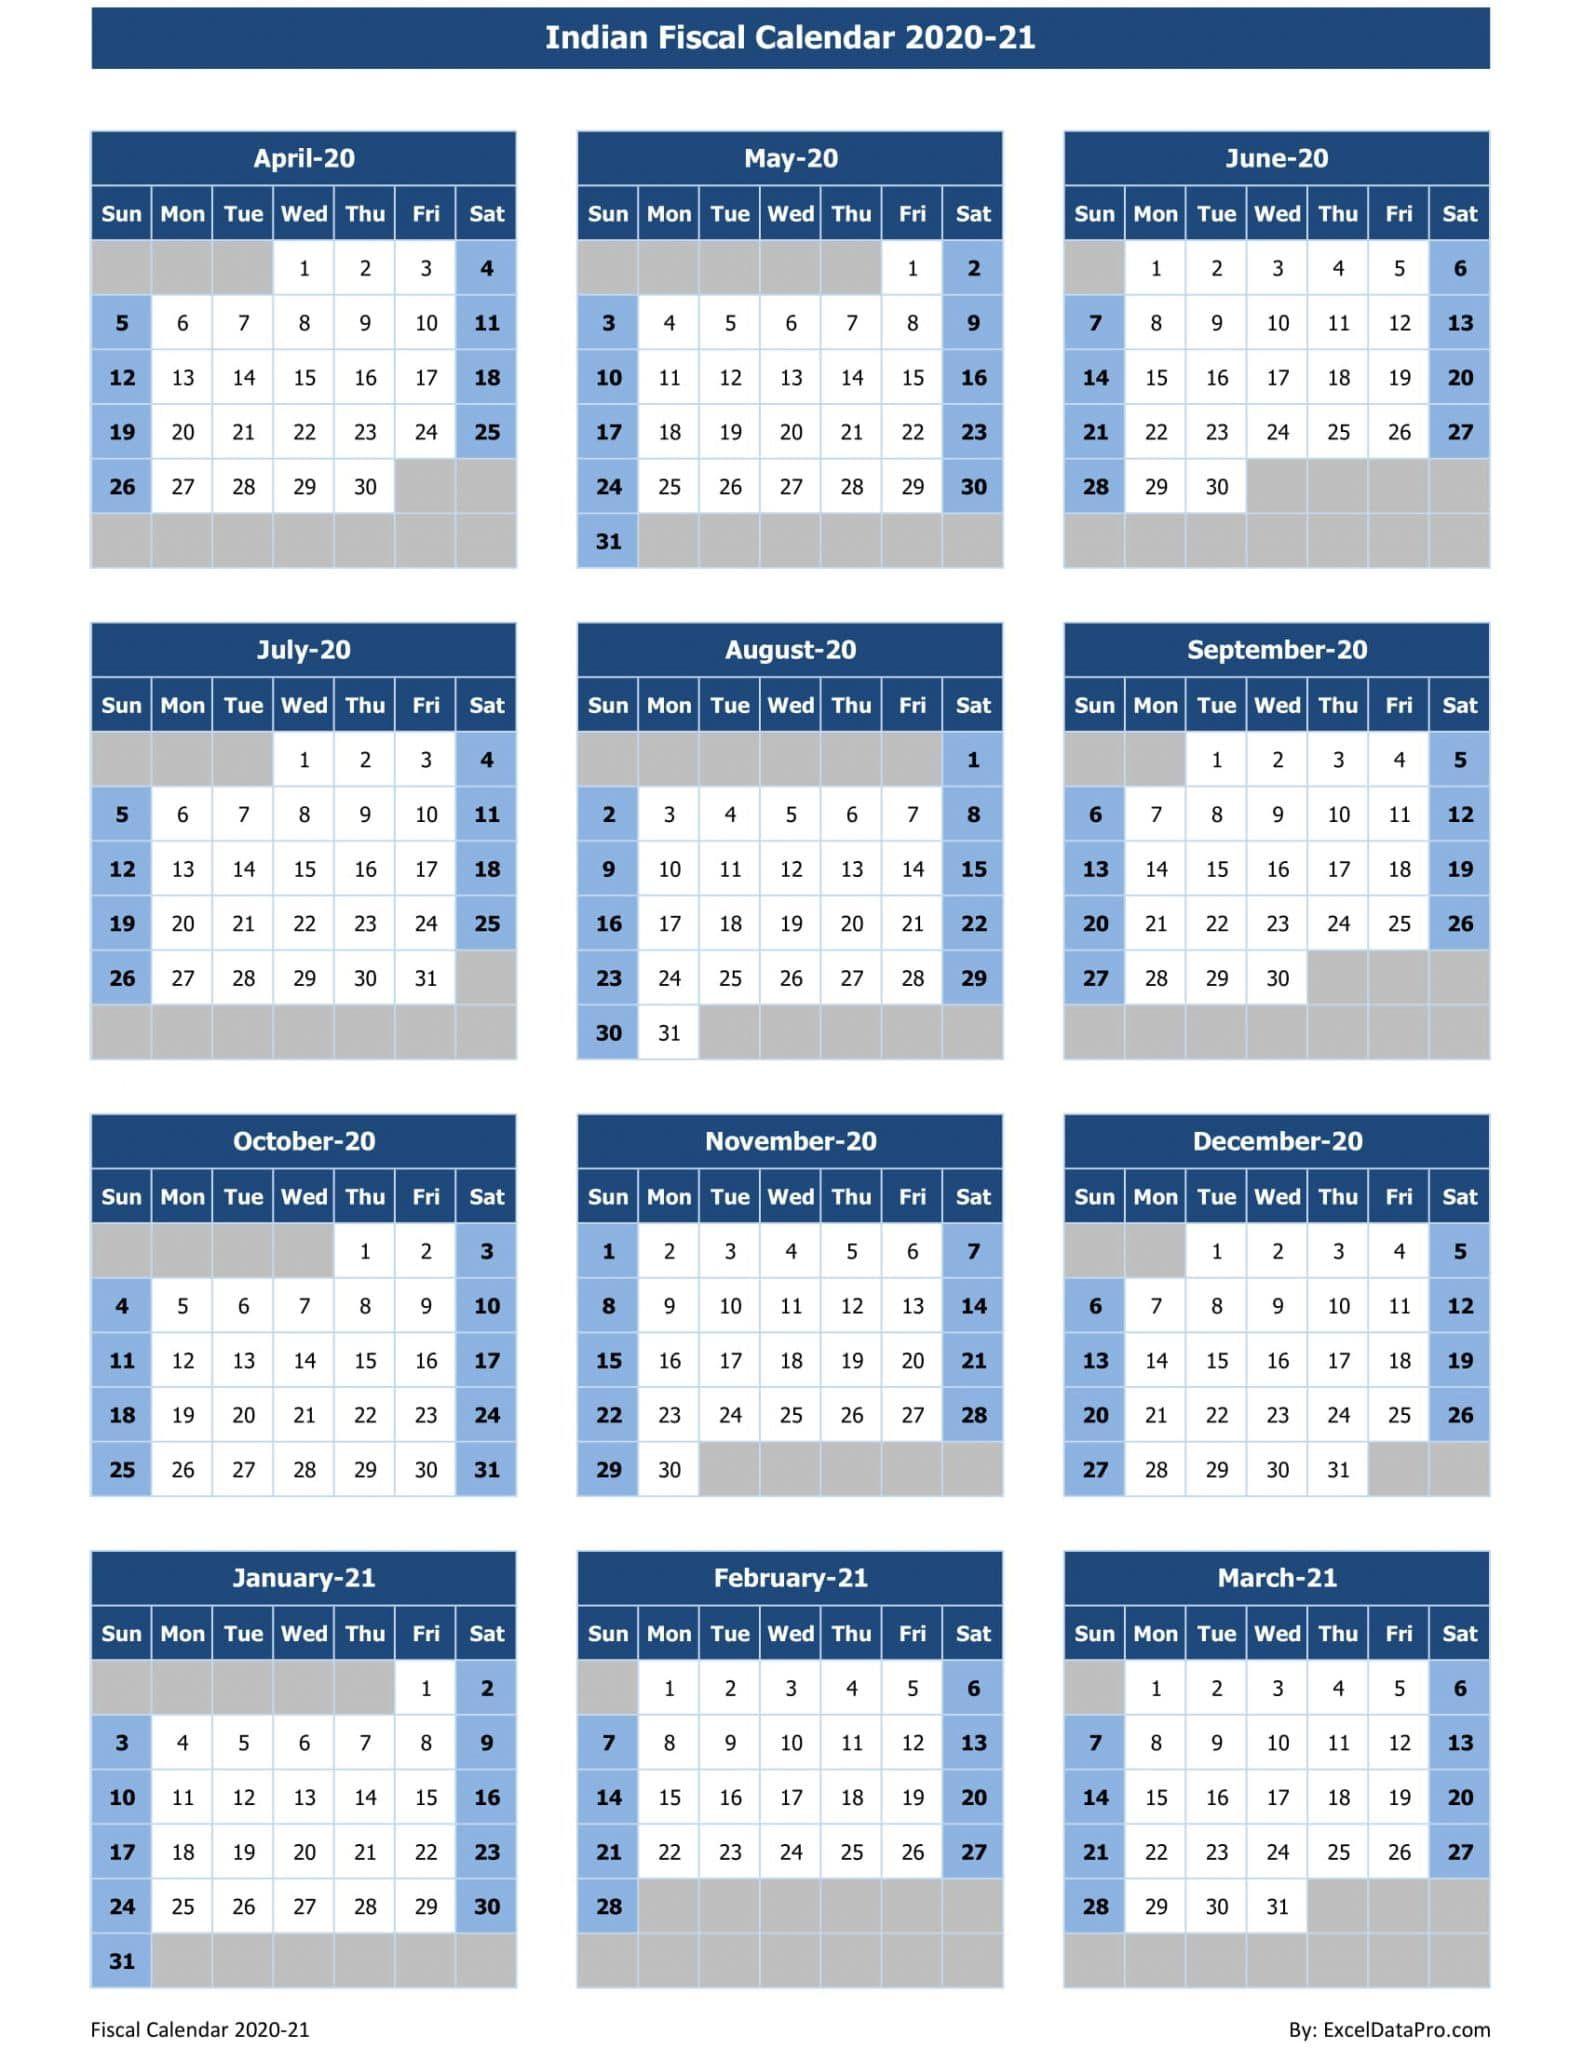 Download Indian Fiscal Calendar 2020 21 Excel Template